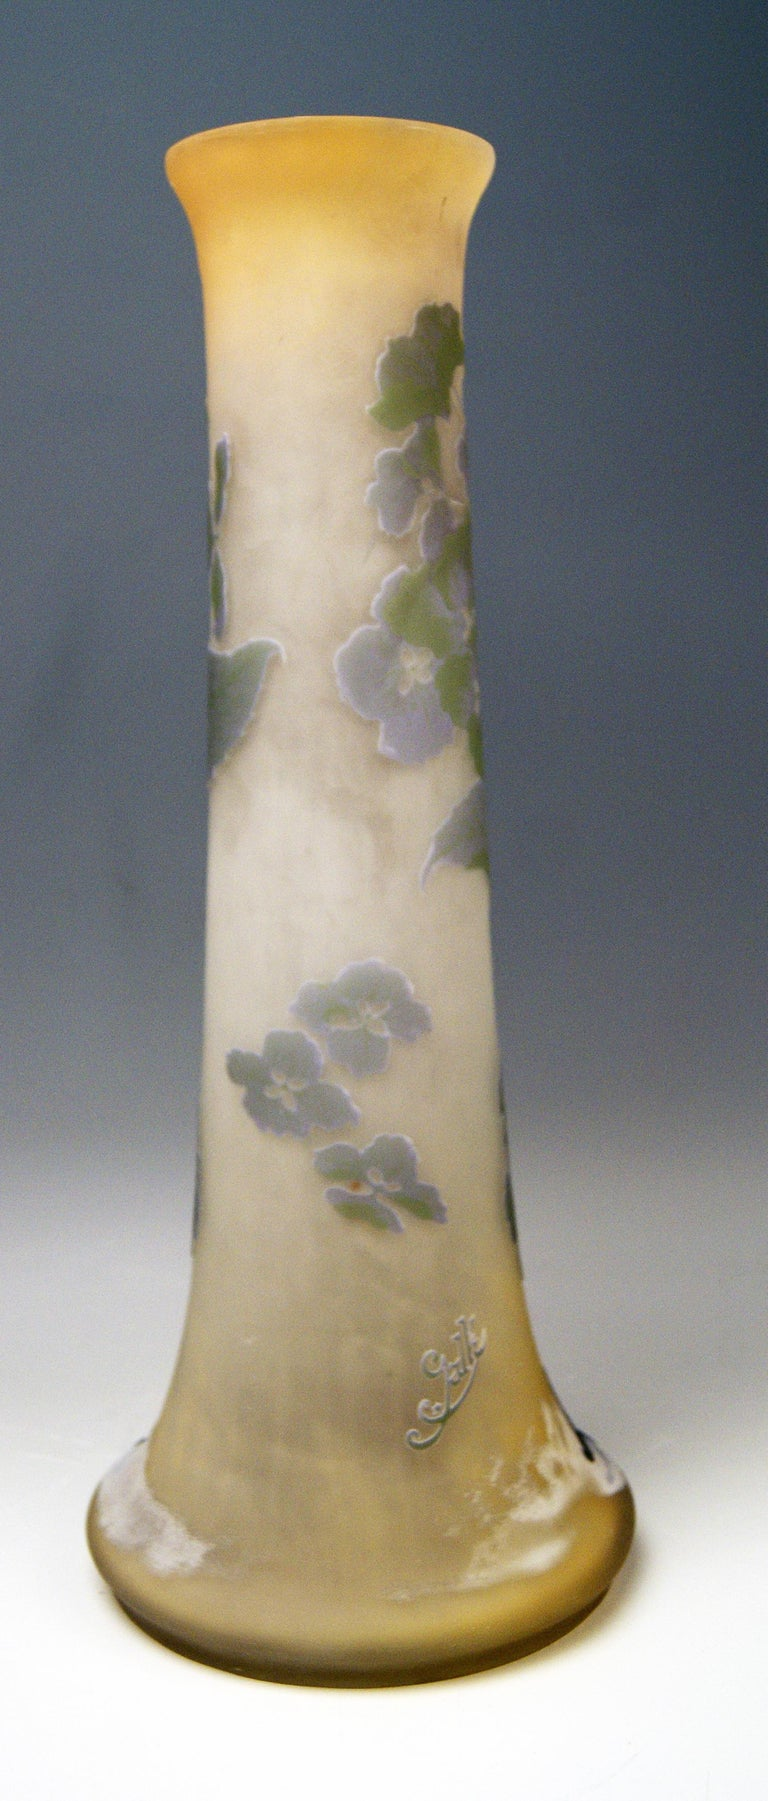 French Gallé Art Nouveau Vase Galle Mallows Flowers France Nancy Height 18.30in c.1904 For Sale